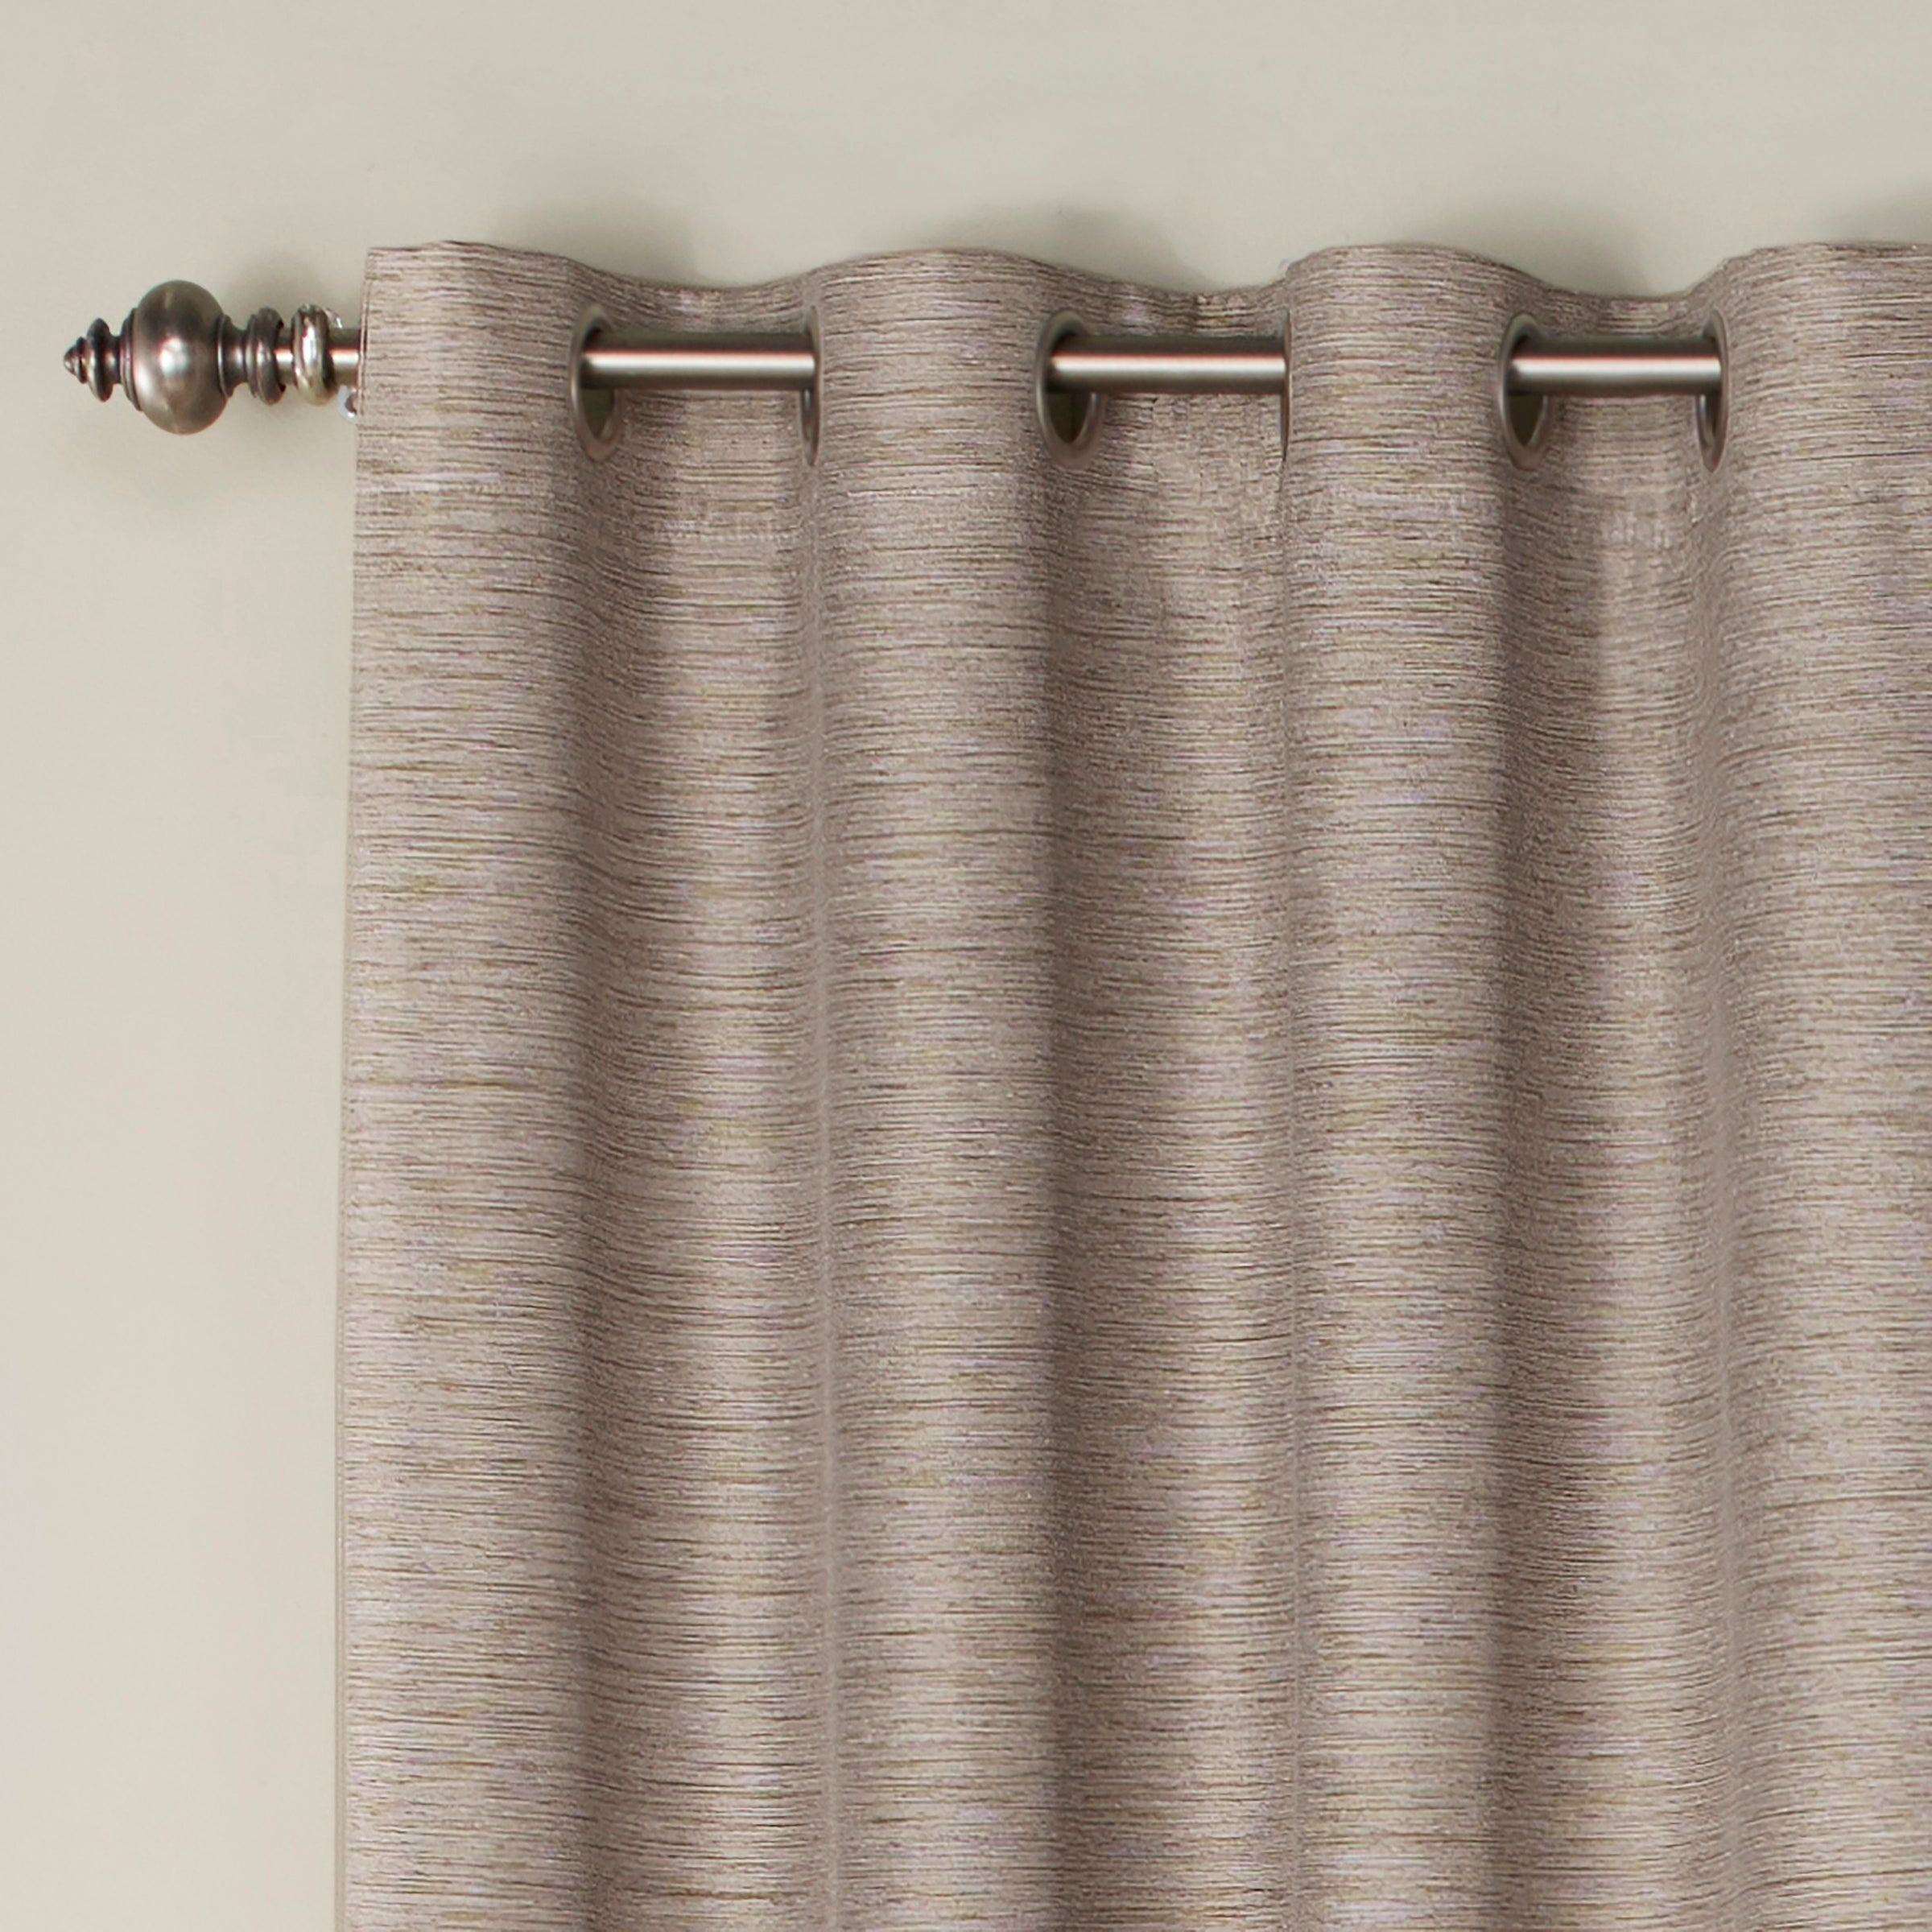 Eclipse Newport Blackout Curtain Panel – 52x95 Pertaining To Eclipse Newport Blackout Curtain Panels (View 7 of 20)